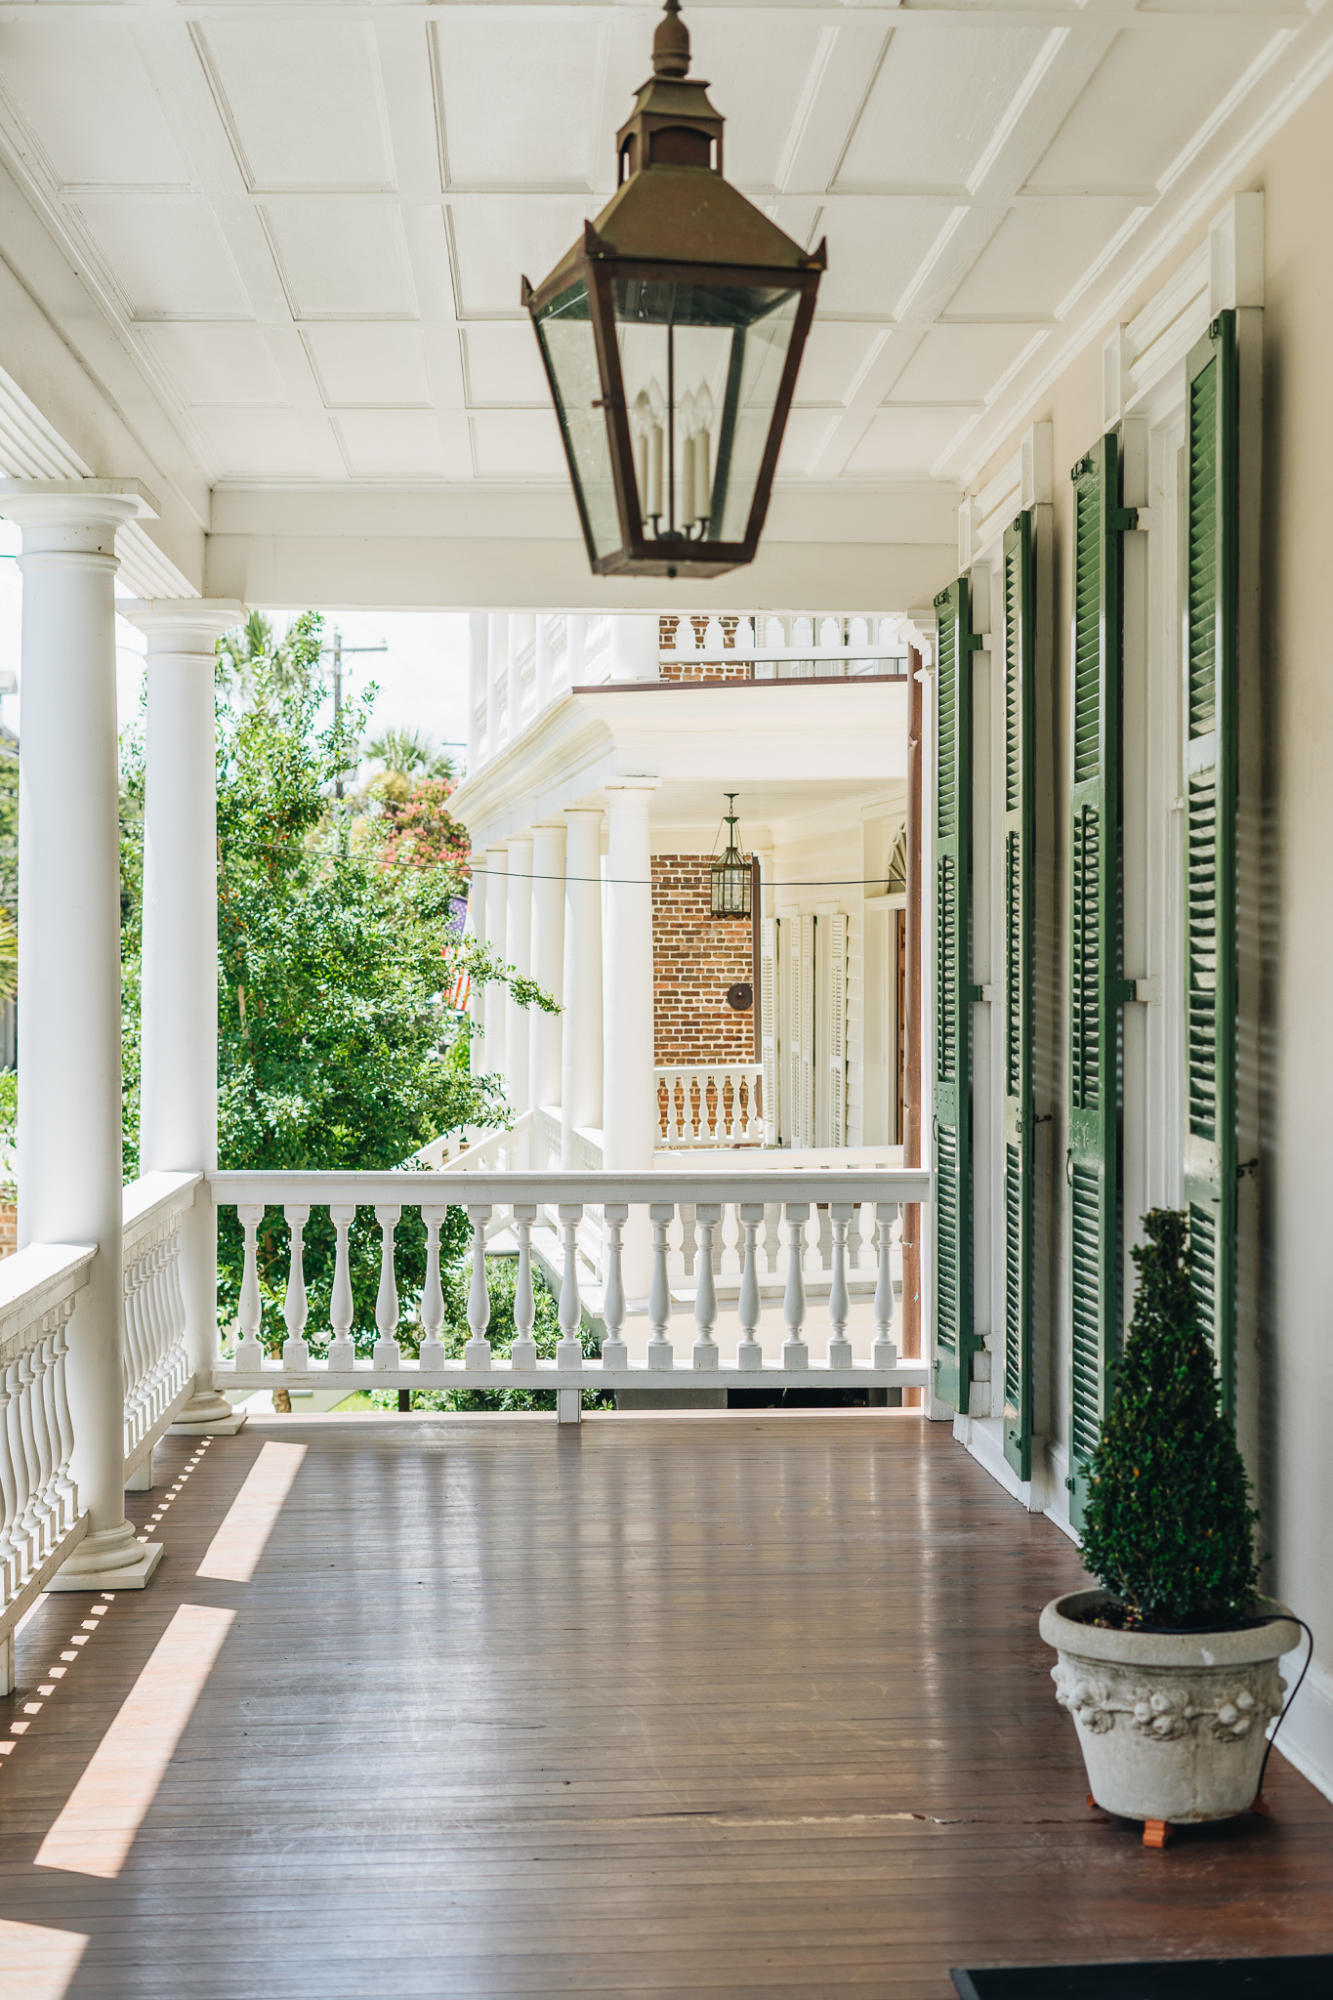 South of Broad Homes For Sale - 44 Battery, Charleston, SC - 101